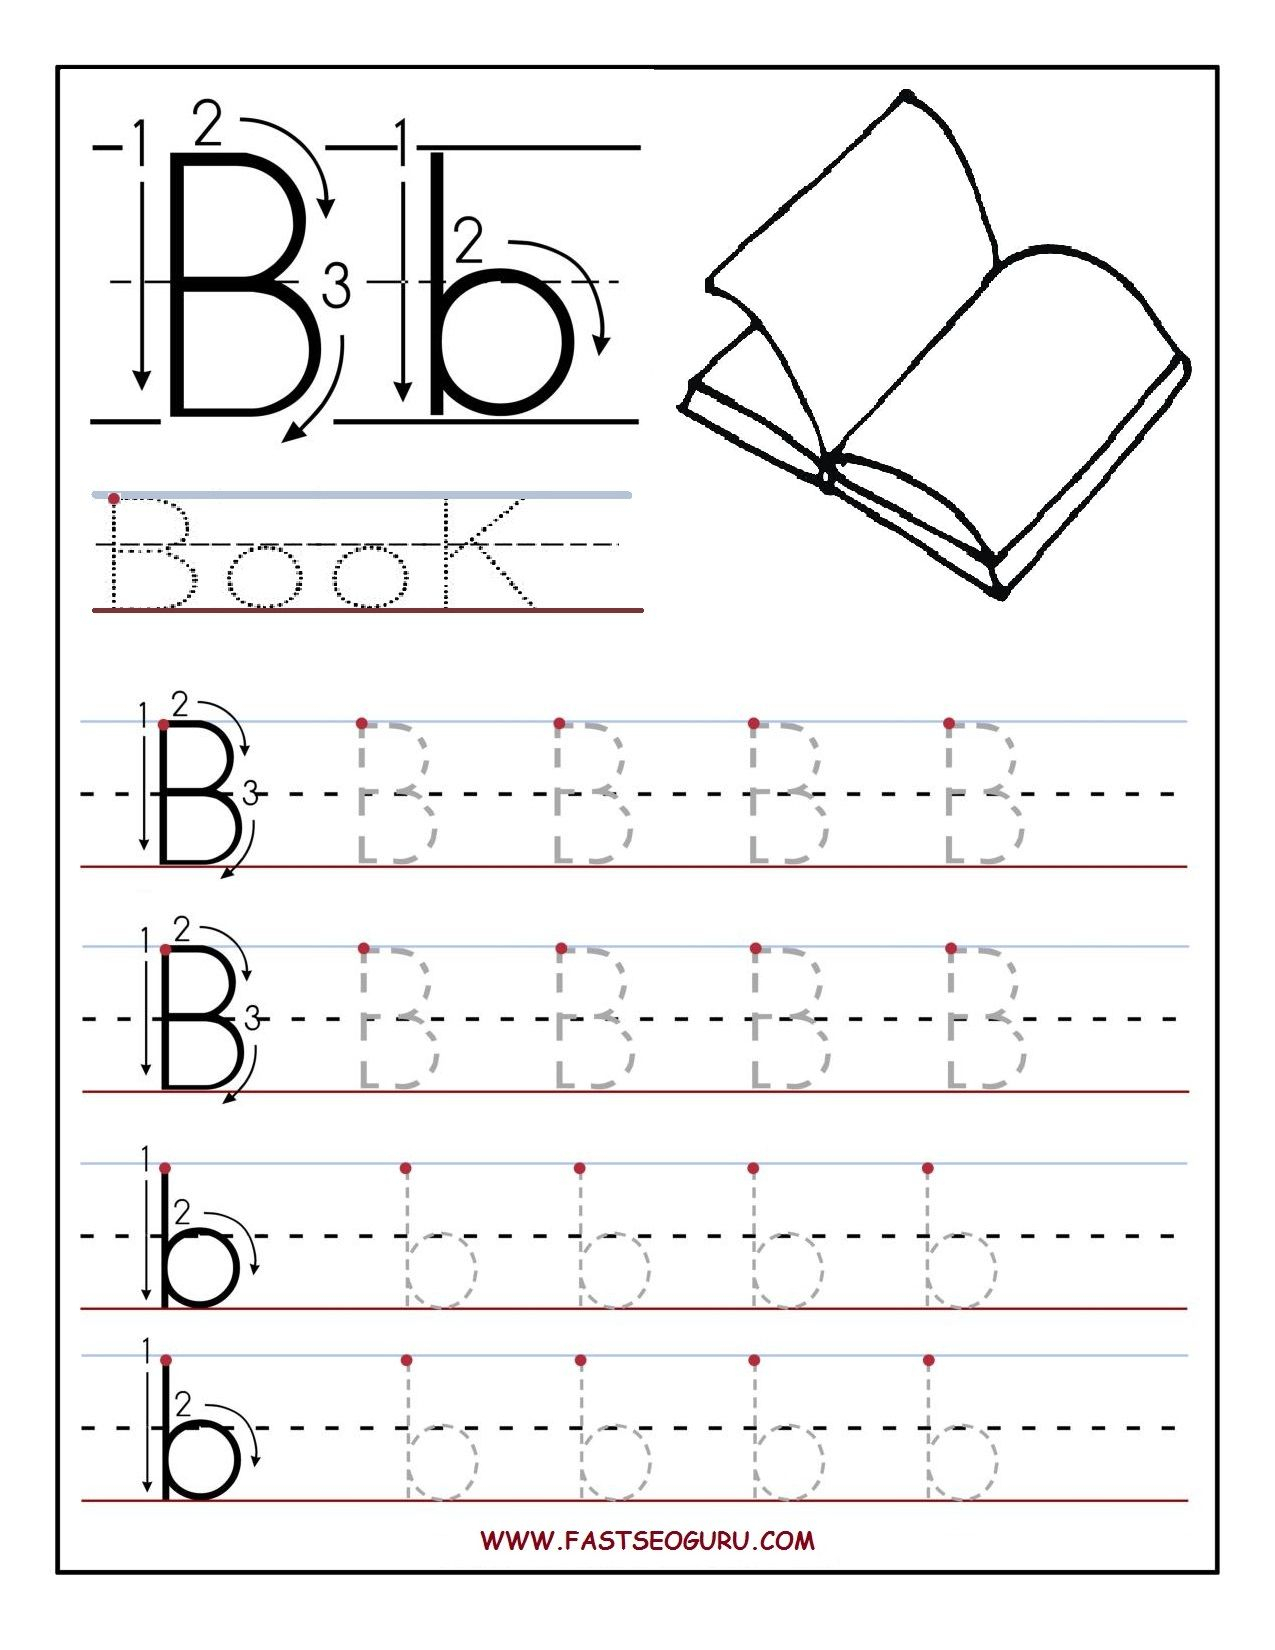 Printable Letter B Tracing Worksheets For Preschool in Alphabet Tracing Worksheets B